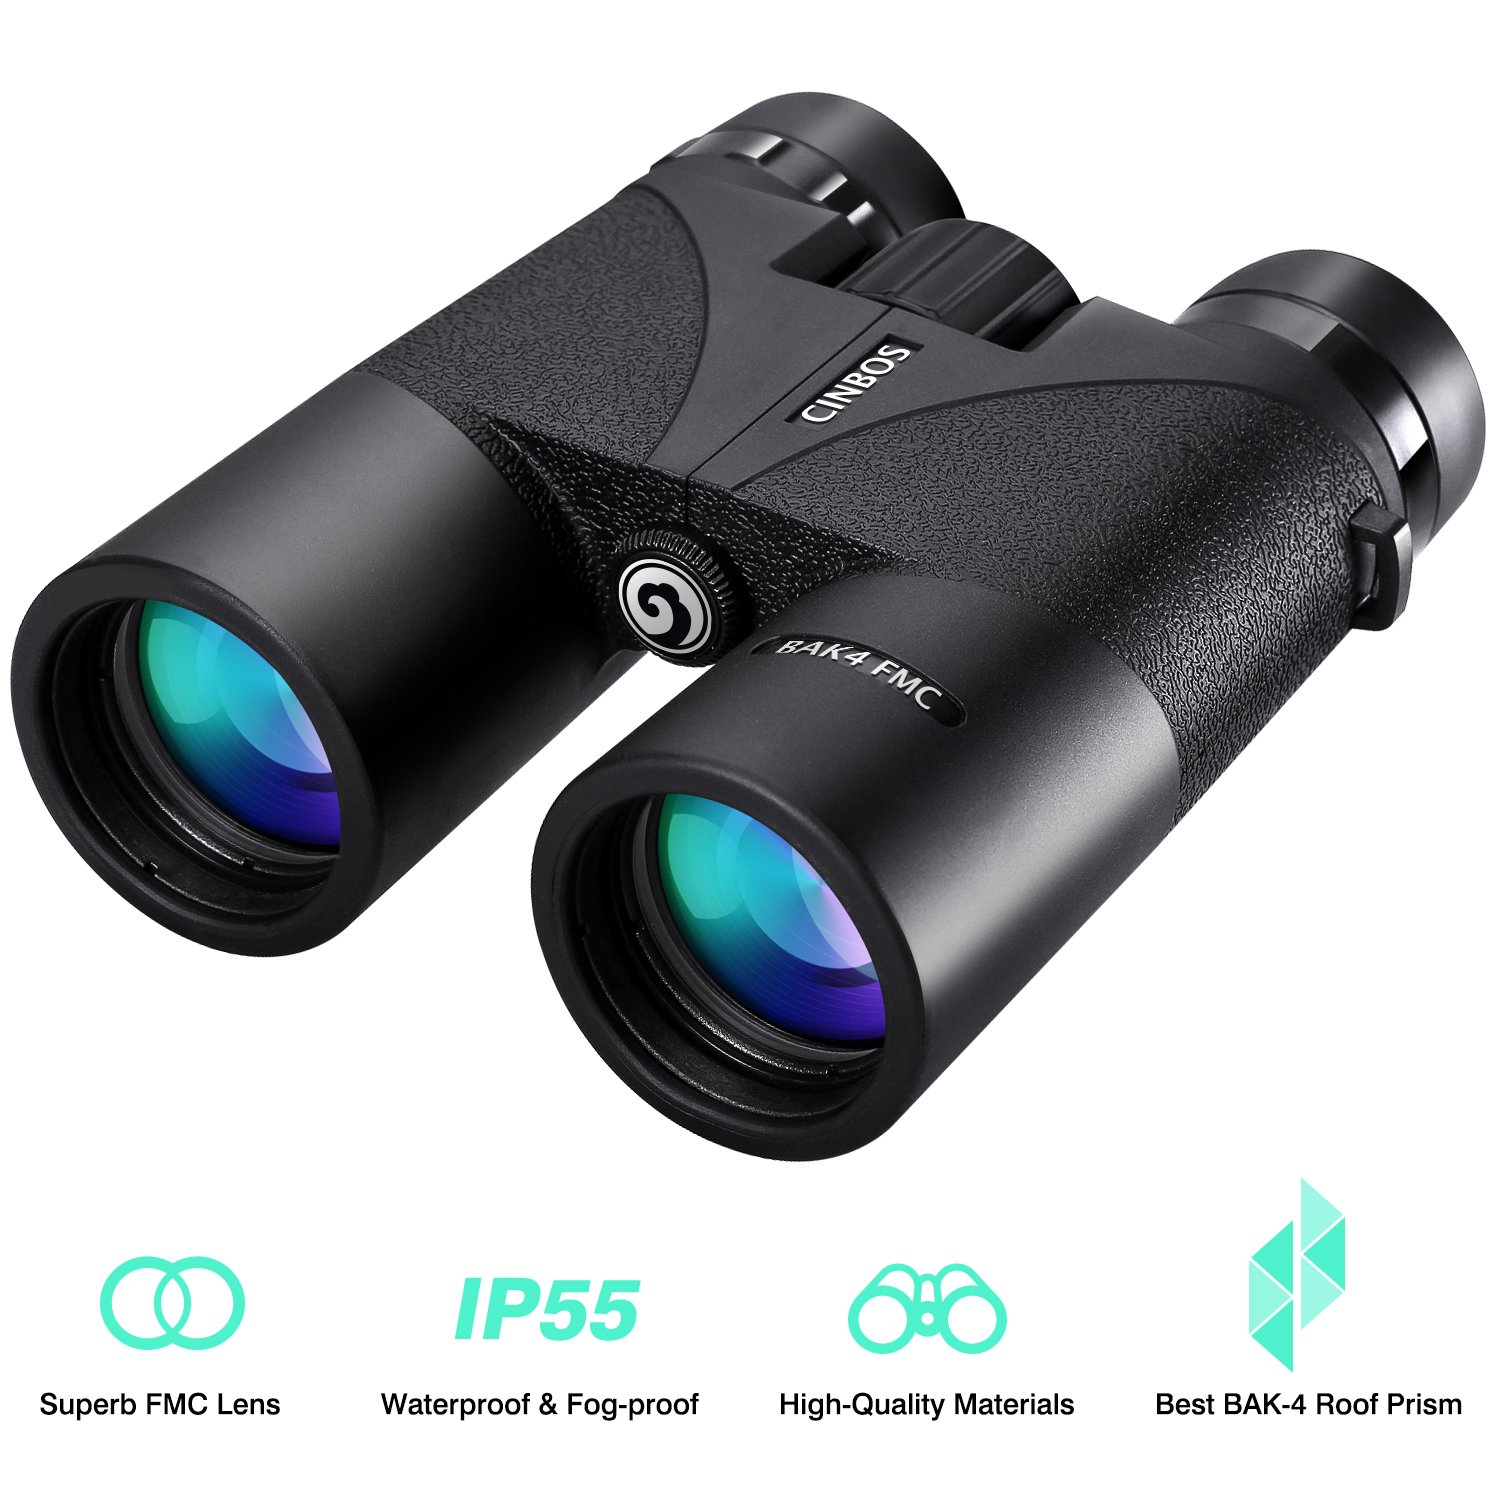 12x42 Binoculars for Adults, Cinbos Panther Professional Binoculars Compact for Bird Watching/Outdoor Sports, Waterproof Fog-Proof HD Optics Telescope BAK4 Prism FMC Lens with Neck Strap/Carrying Bag by CINBOS